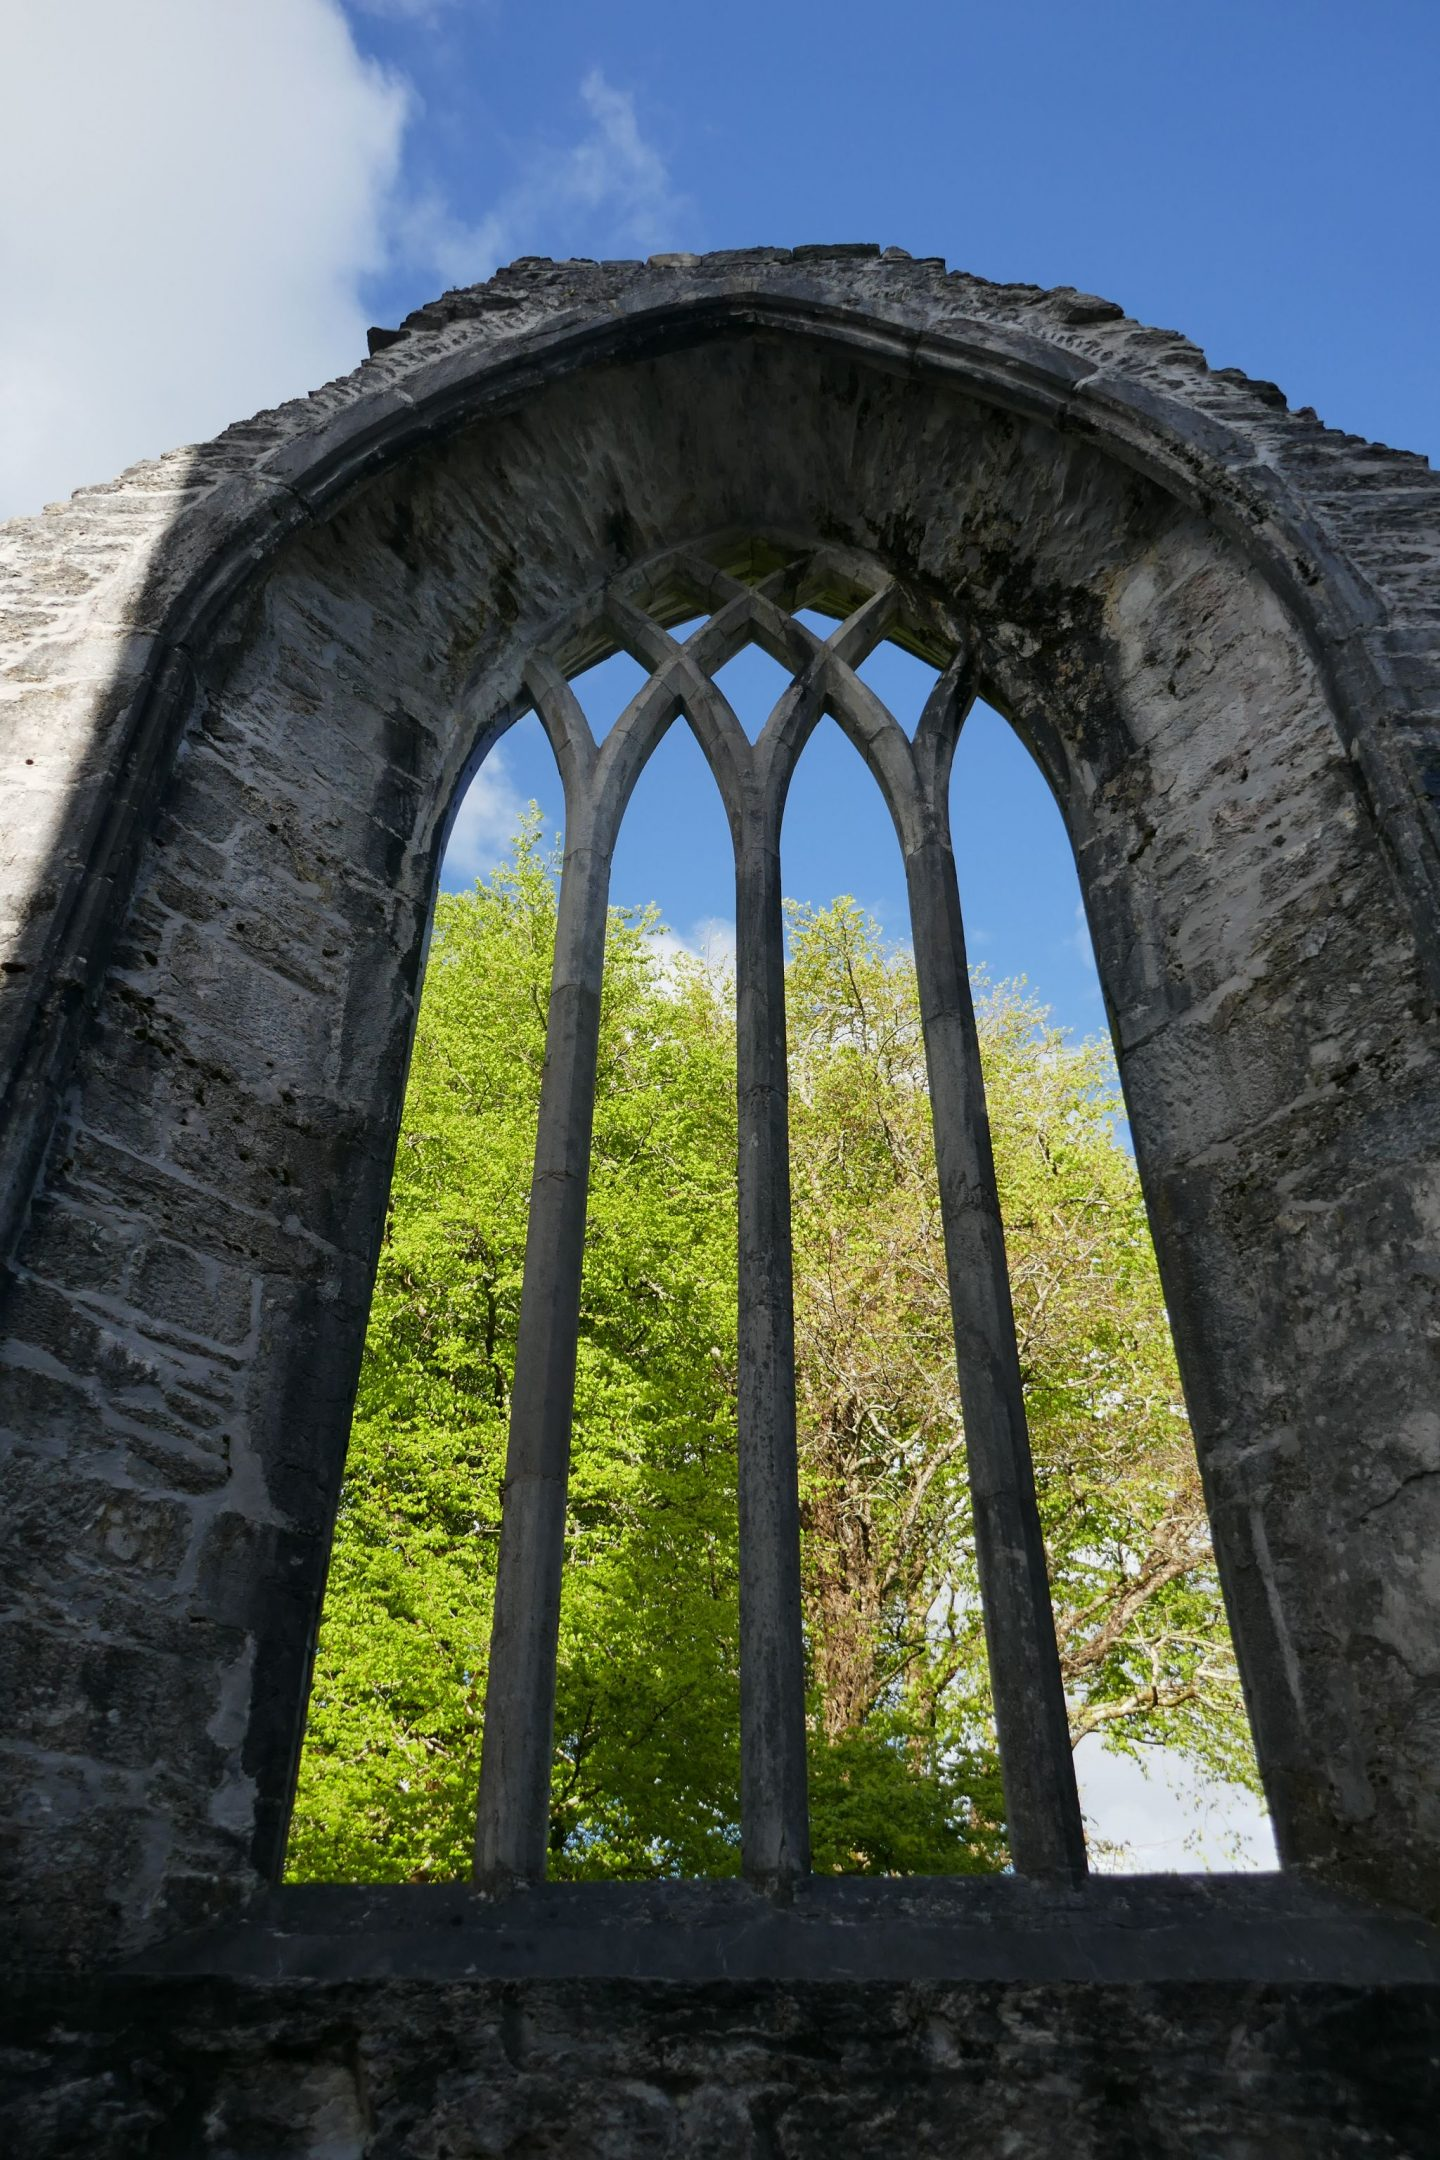 Looking out at window ruin Muckross Abbe, Killarney